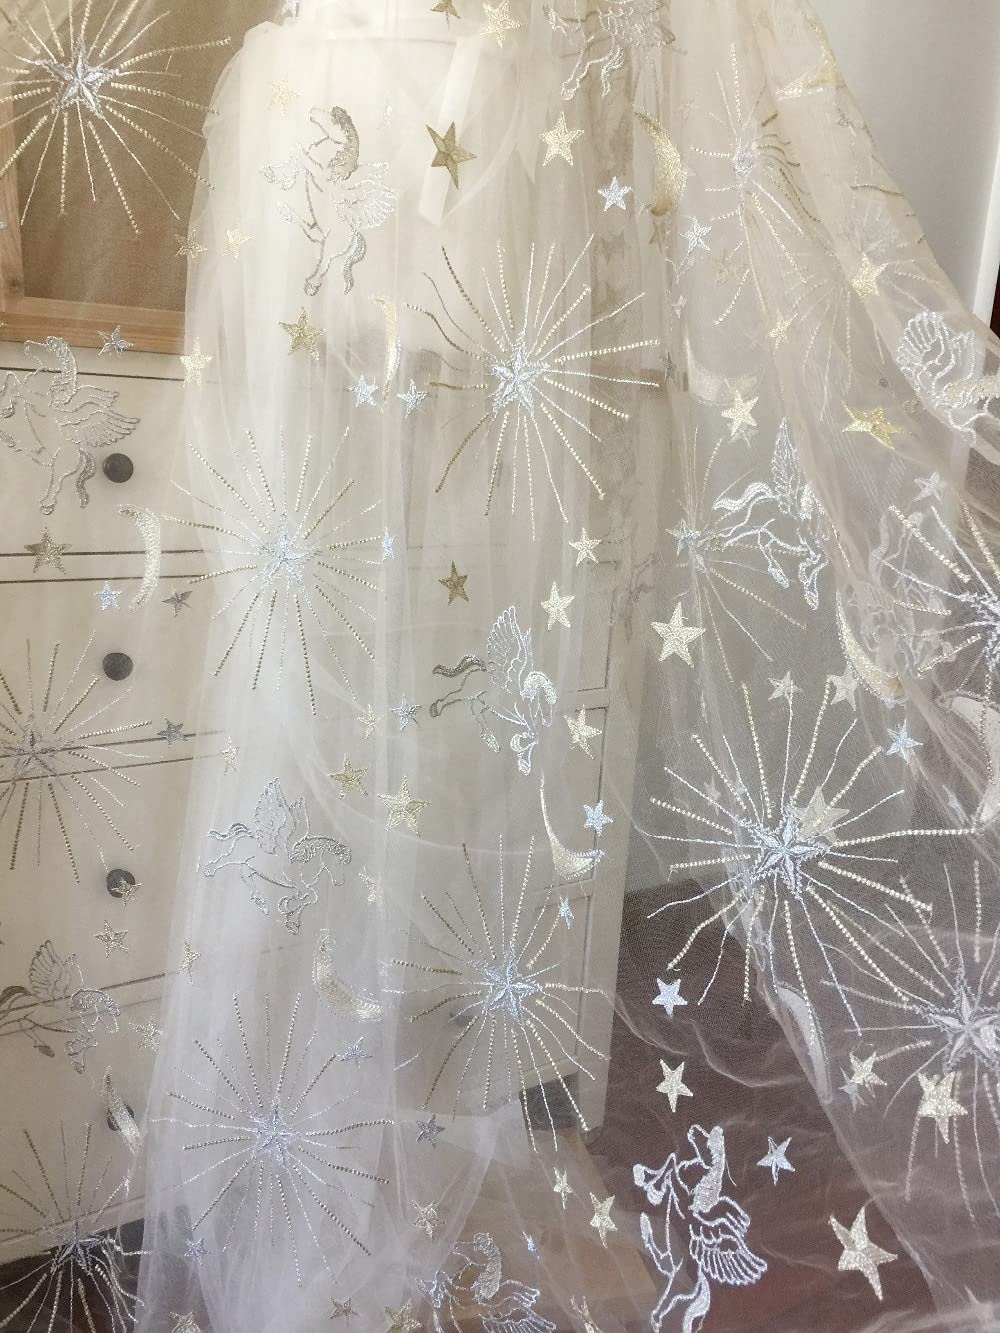 SELCRAFT 5 Yards Soft Tulle Baltimore Mall Lace Fabric Baltimore Mall Horse Embro Star Floral